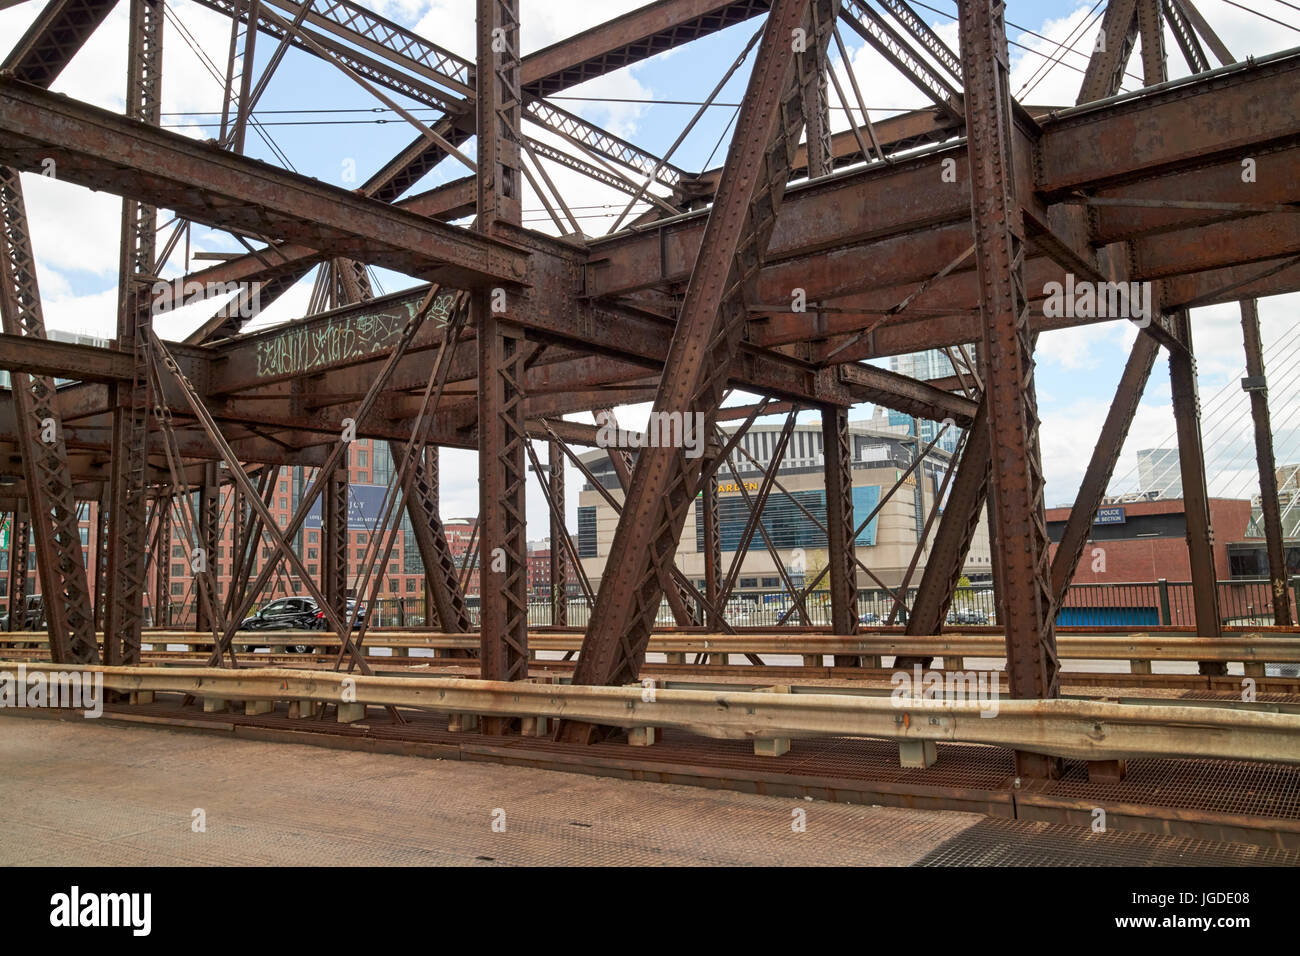 rusty metalwork of the charlestown north washington street bridge Boston USA - Stock Image